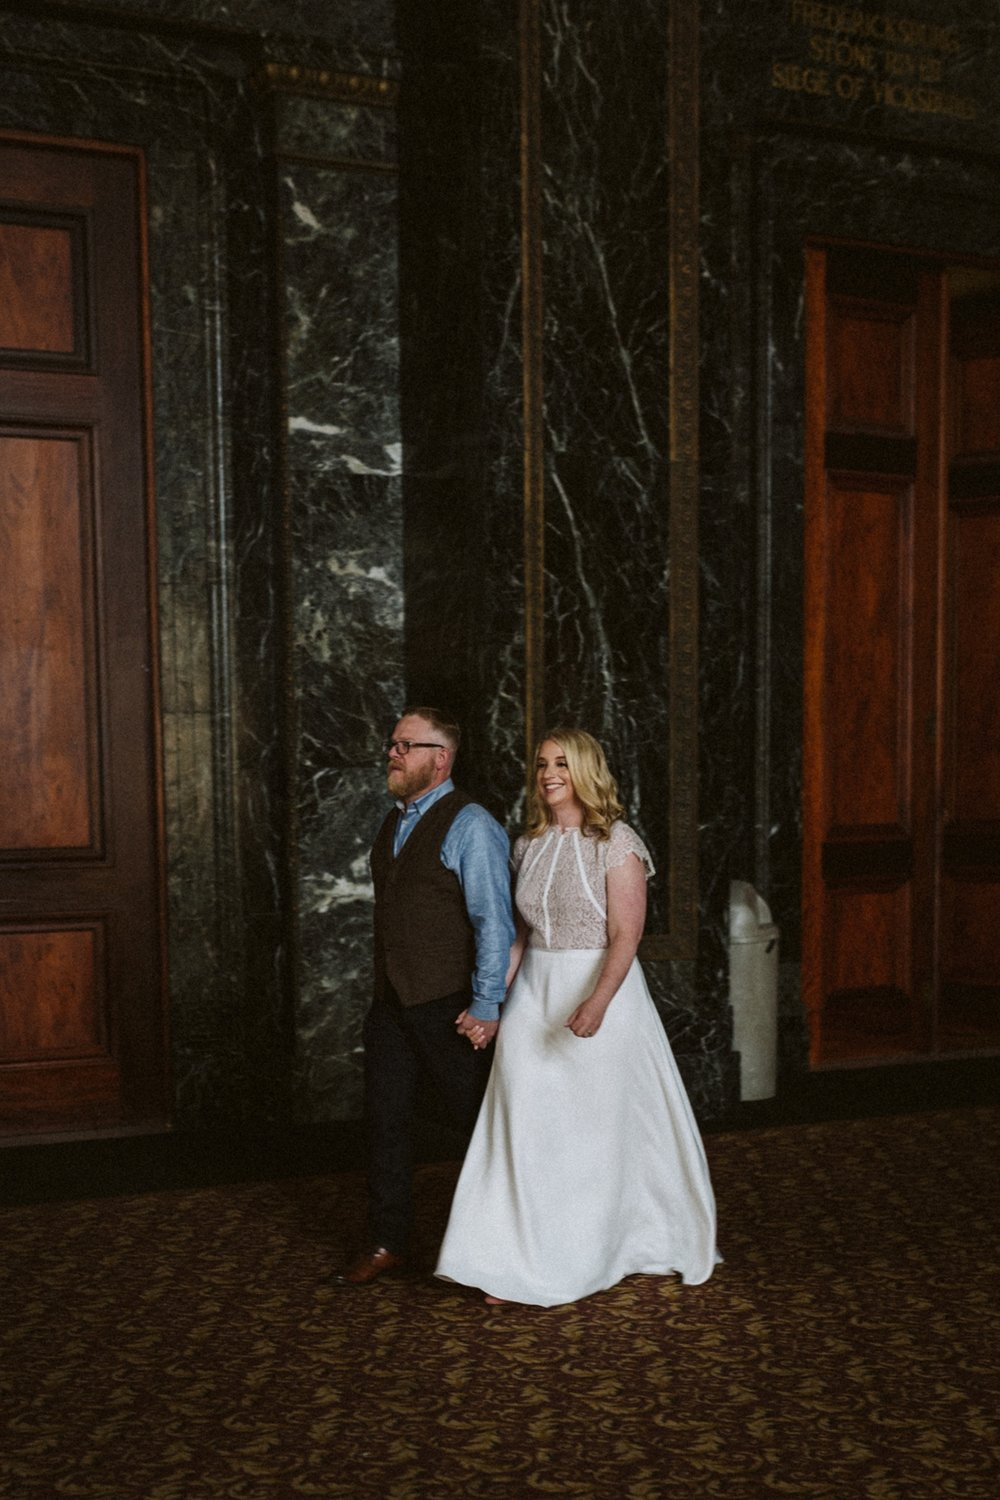 Chicago Cultural Center wedding | Chicago elopements | lisa kathan photography